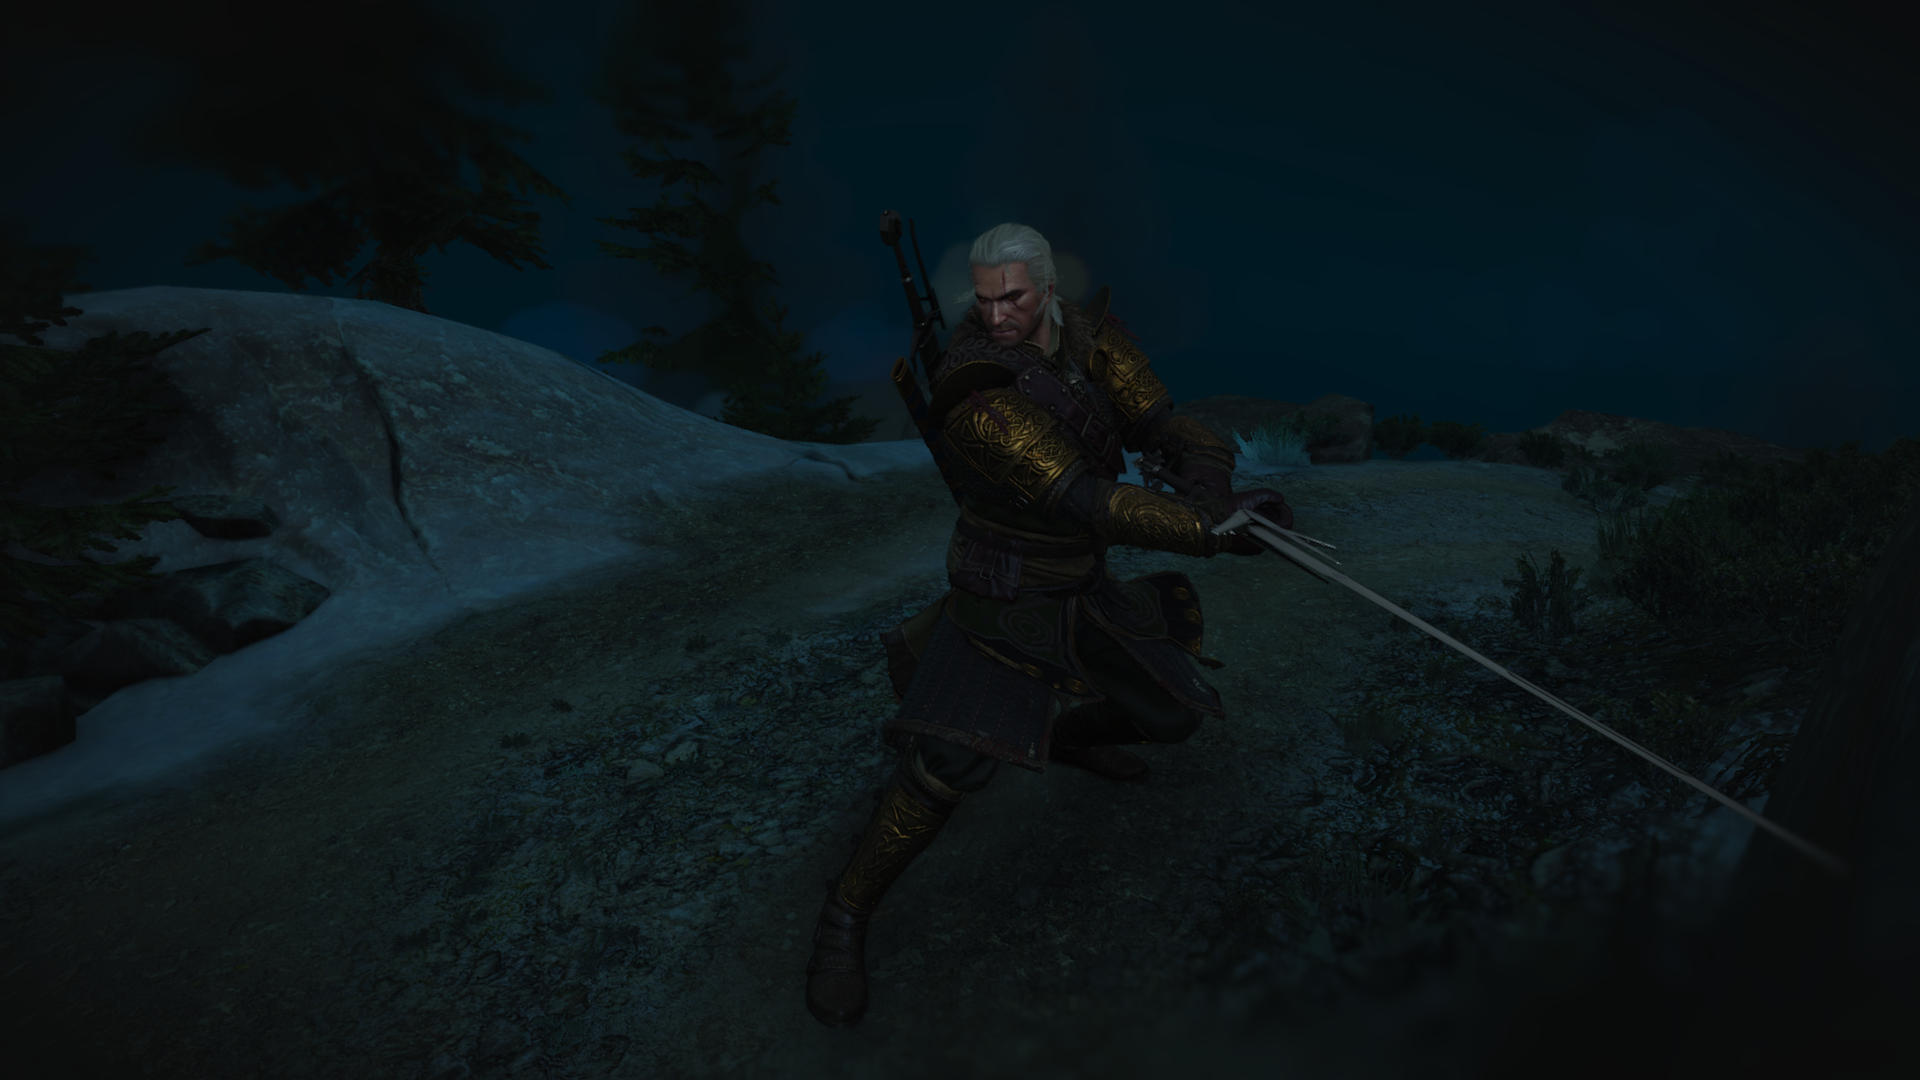 Geralt sword - Witcher 3: Wild Hunt, the